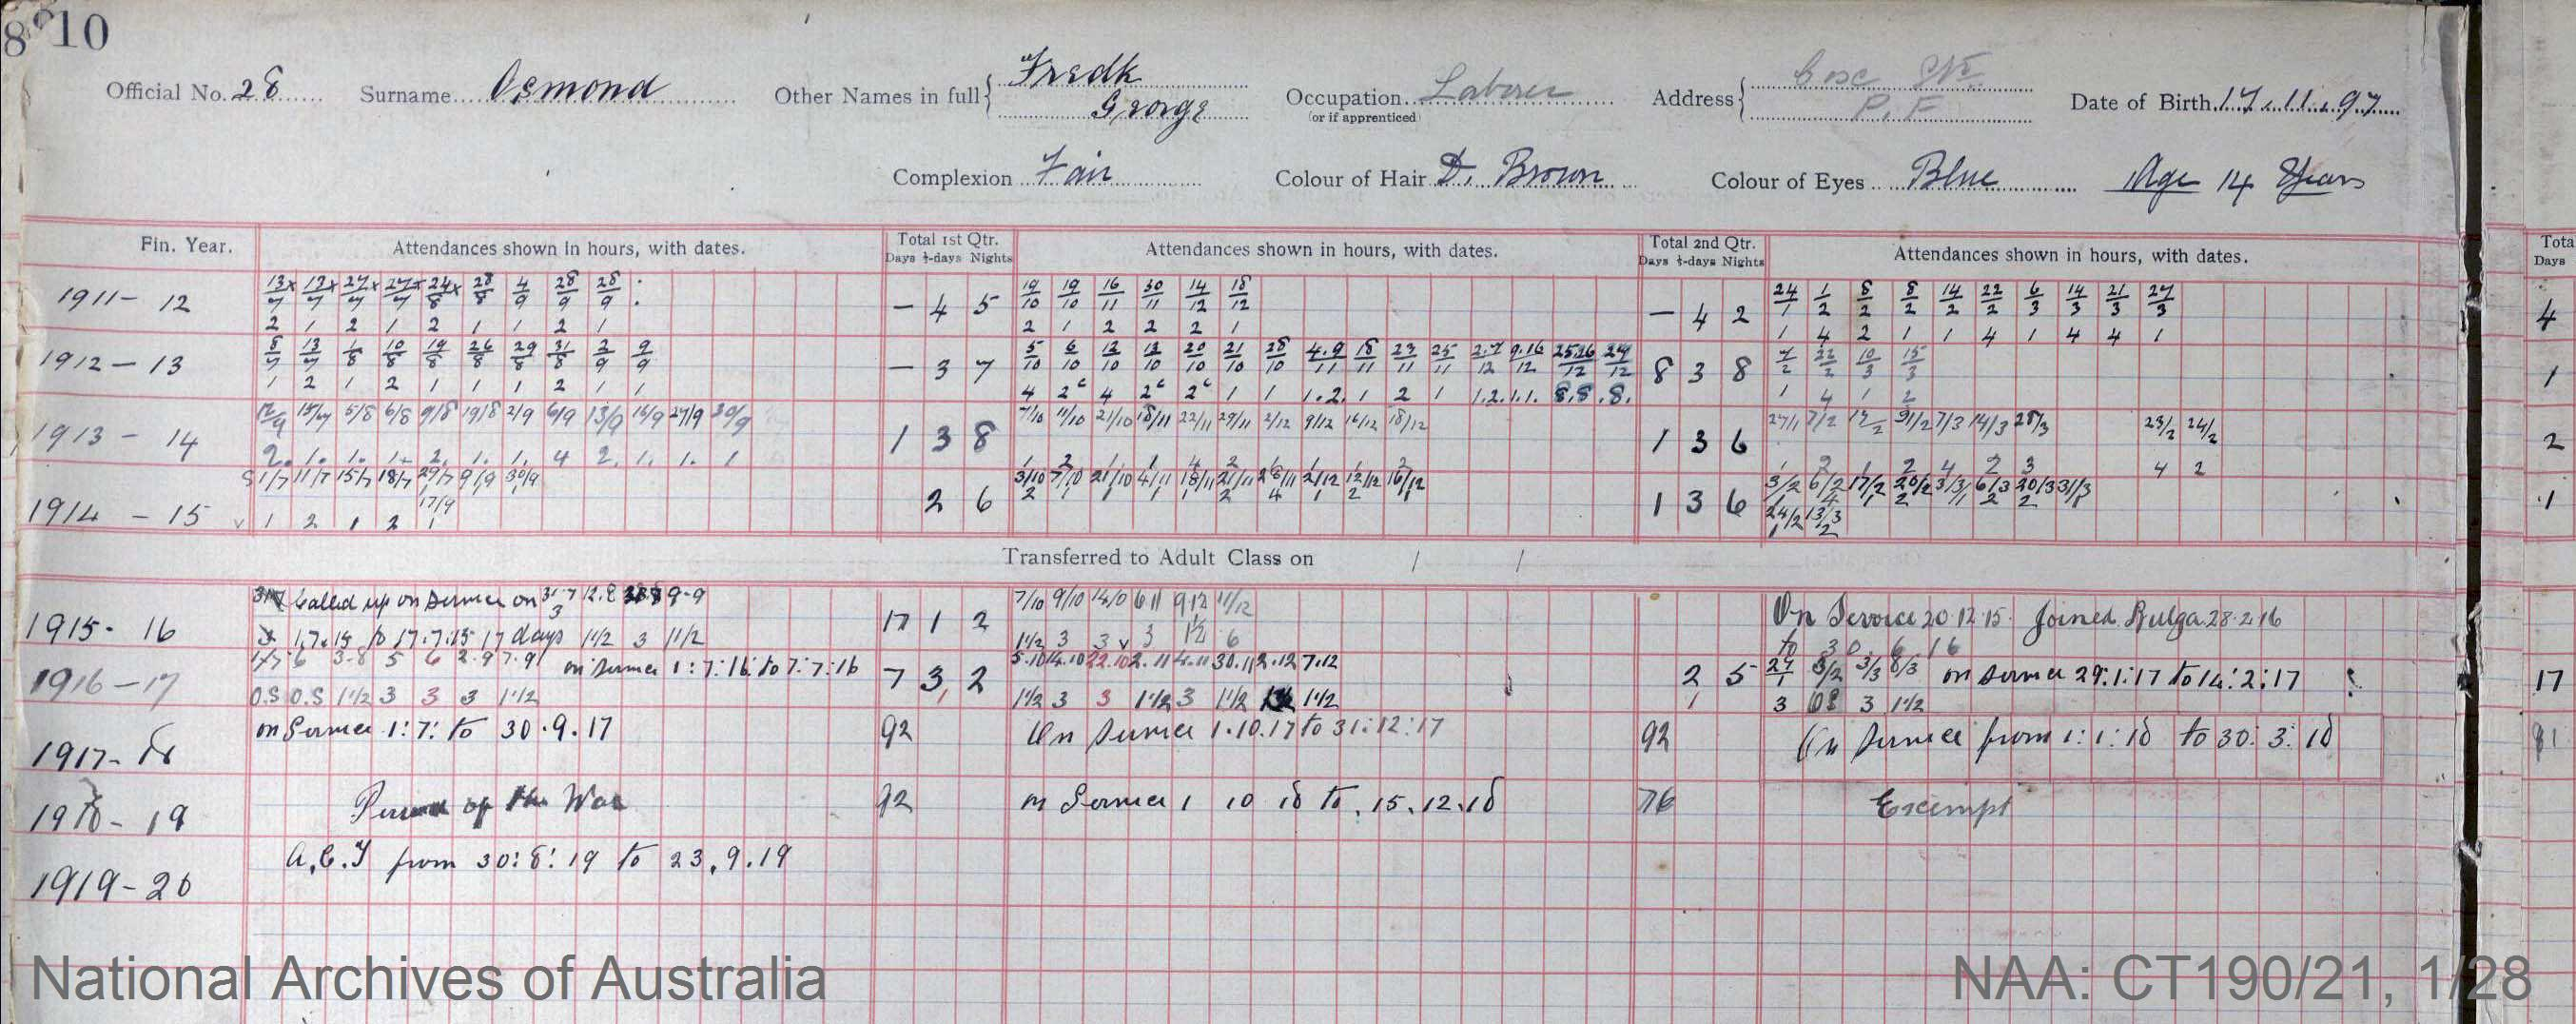 SURNAME - OSMOND;  GIVEN NAME(S) - Frederick George;  OFFICIAL NUMBER - 28;  DATE OF BIRTH - 17 November 1895;  PLACE OF BIRTH - [Unknown];  NEXT OF KIN - [Unknown] ;  SERVICE/STATION - Port Fairy;  REGISTRATION DATE - 30 January 1911